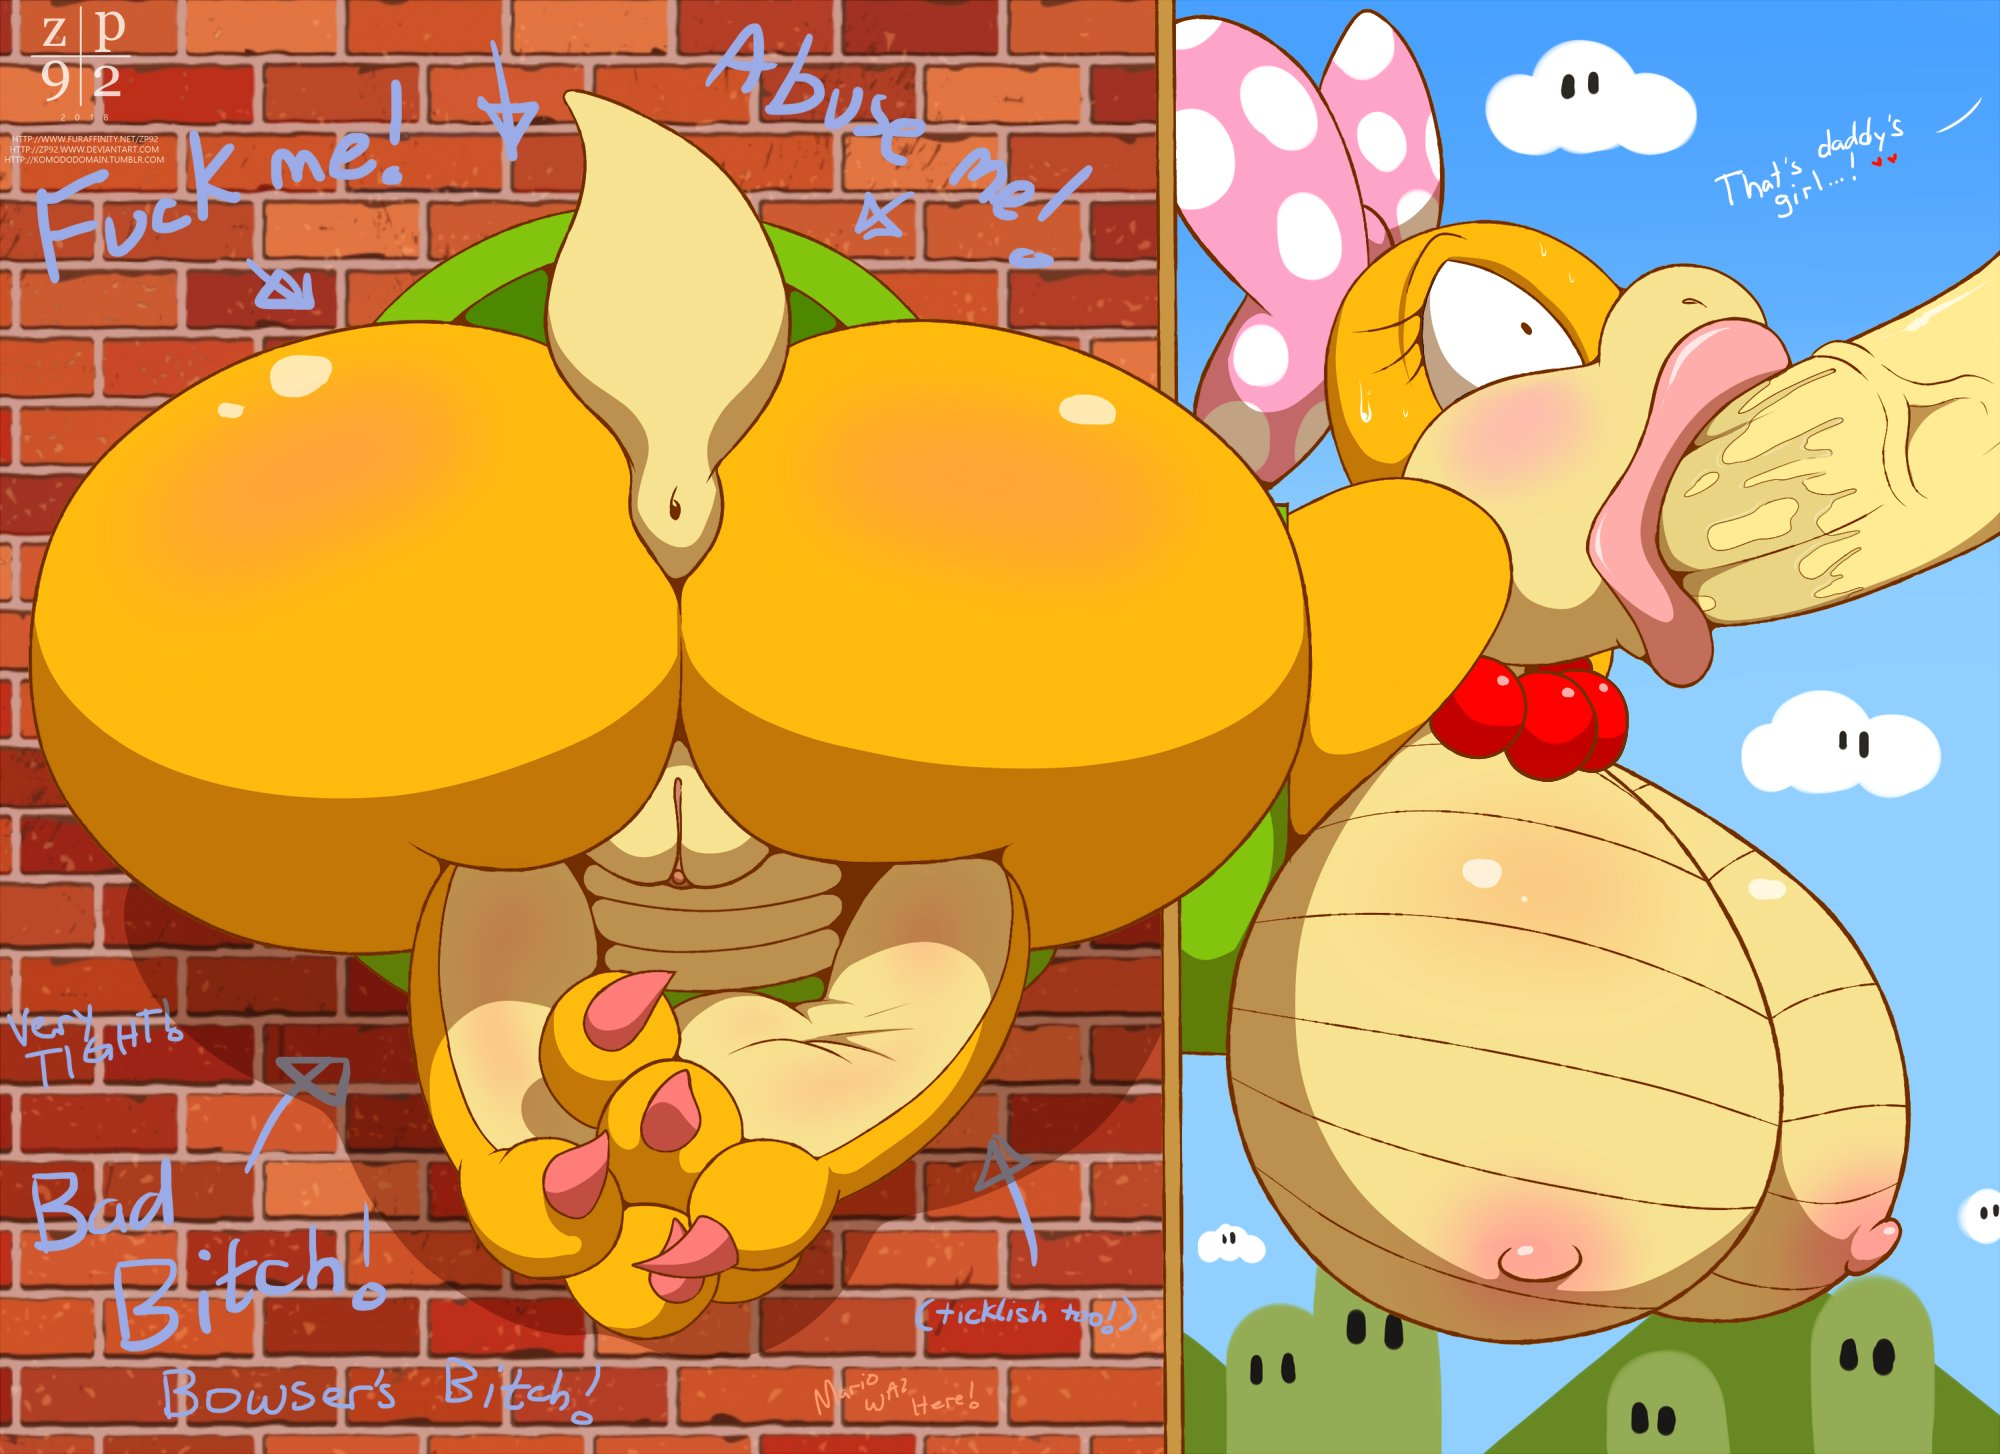 zp92 koopa koopaling wendy o. koopa 2018 text hi res highres english text digital media nintendo 3 toes <3 accessory anthro anus areola areolae bead necklace big breasts big butt big penis blush bodily fluids breasts butt claws dialogue duo erection erect nipples faceless character faceless male feet fellatio female female penetrated forced forced oral genitals hair accessory hair bow hair ribbon huge breasts huge butt jewelry male male/female male penetrating male penetrating female naked necklace nipples non-mammal breasts nude oral oral penetration penetration penile penis public use pussy ribbons saliva scalie sex soles stuck sweat through wall toes toe claws vaginal penetration vein veiny penis video games